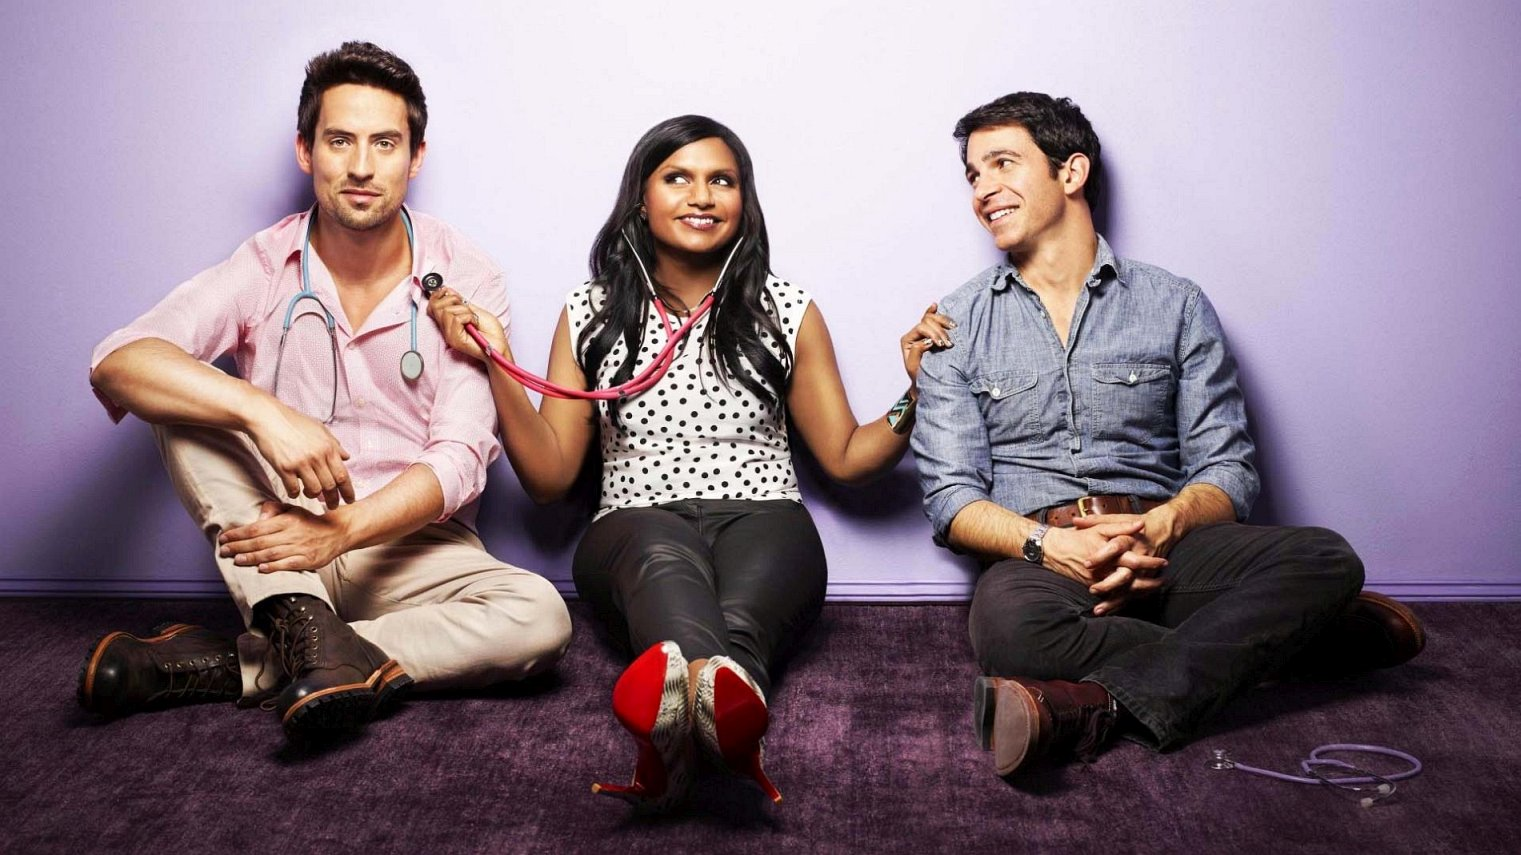 The Mindy Project season 6 episode 10 watch online